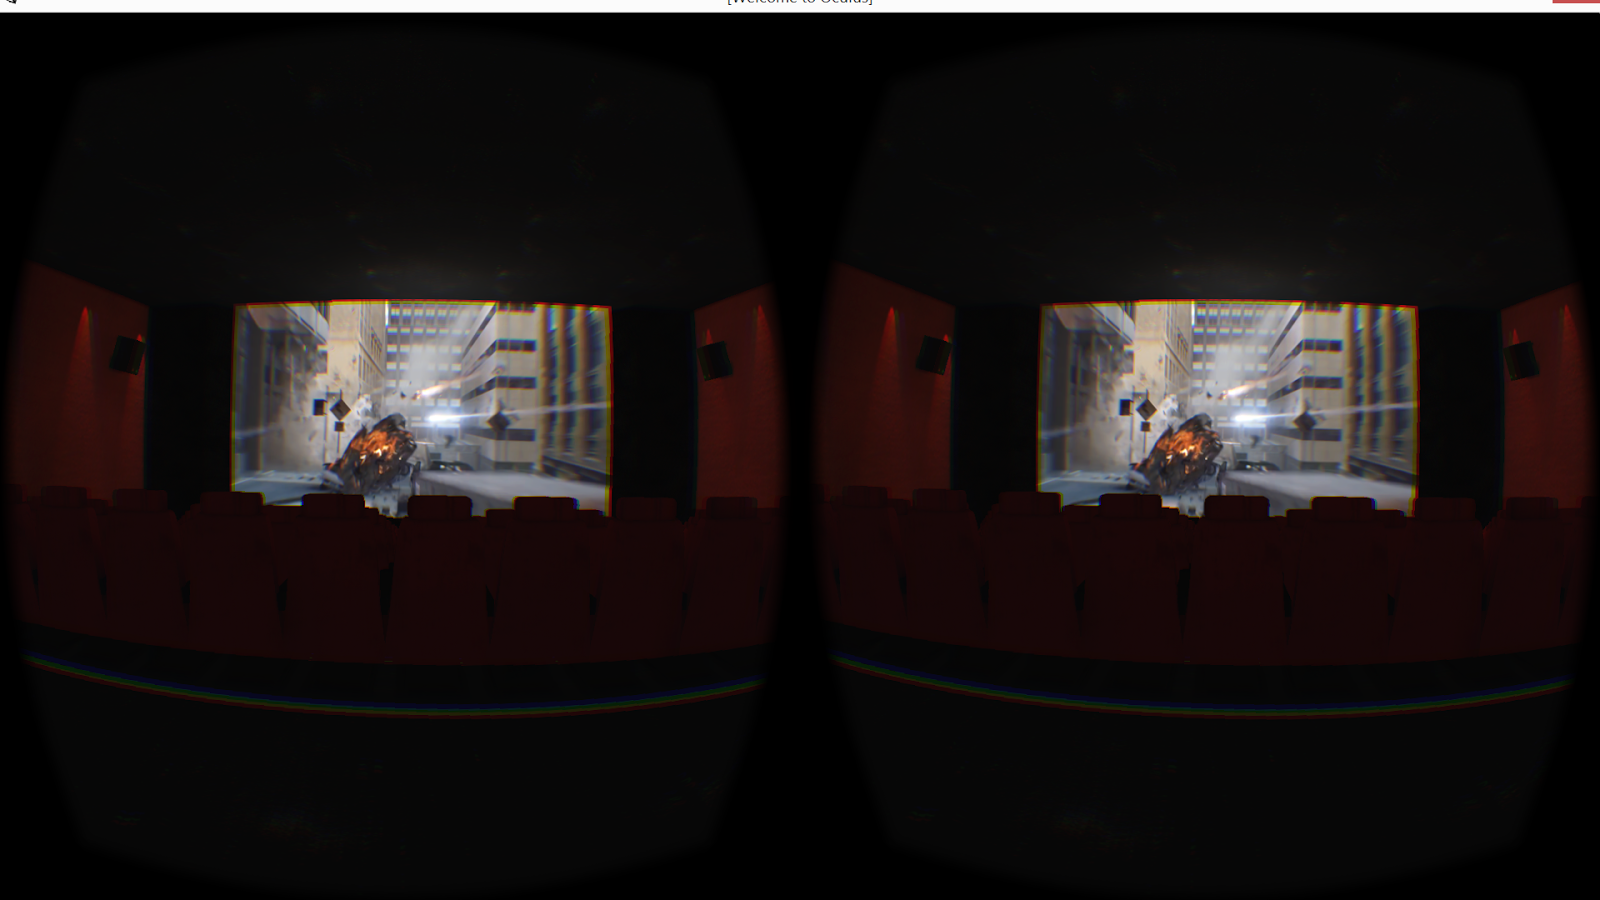 I've heard it said that picture quality in Oculus will be ...